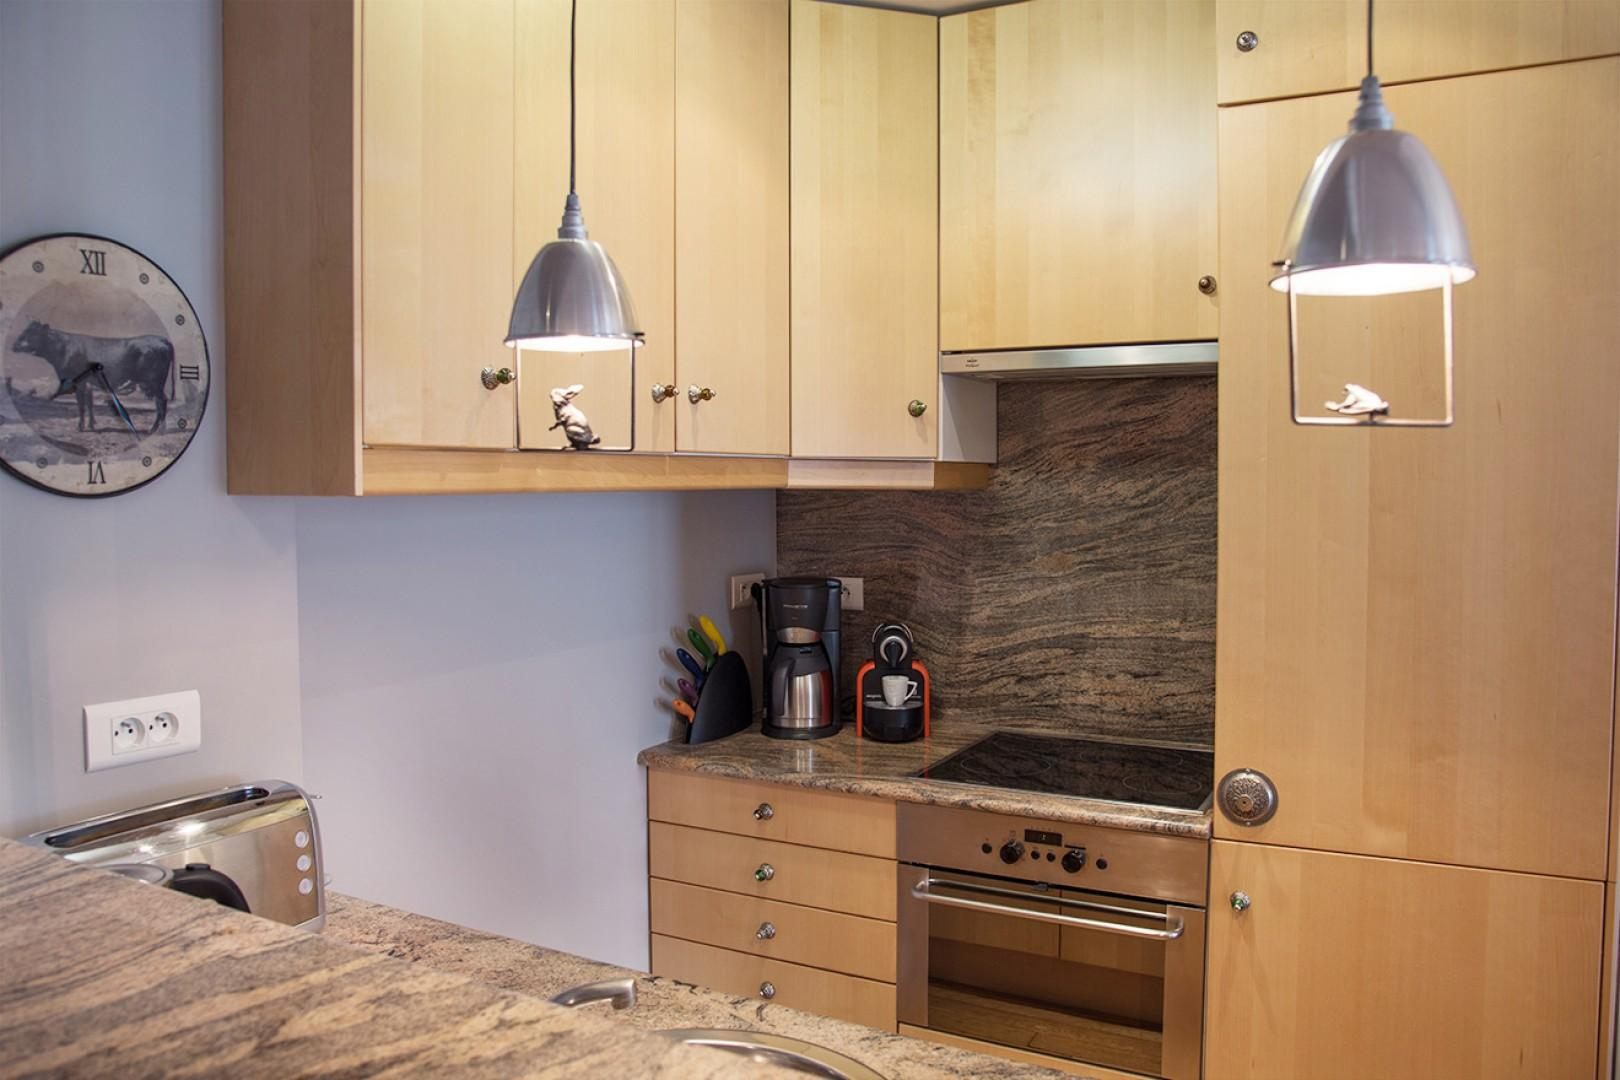 The fully equipped kitchen has a suite of modern appliances.